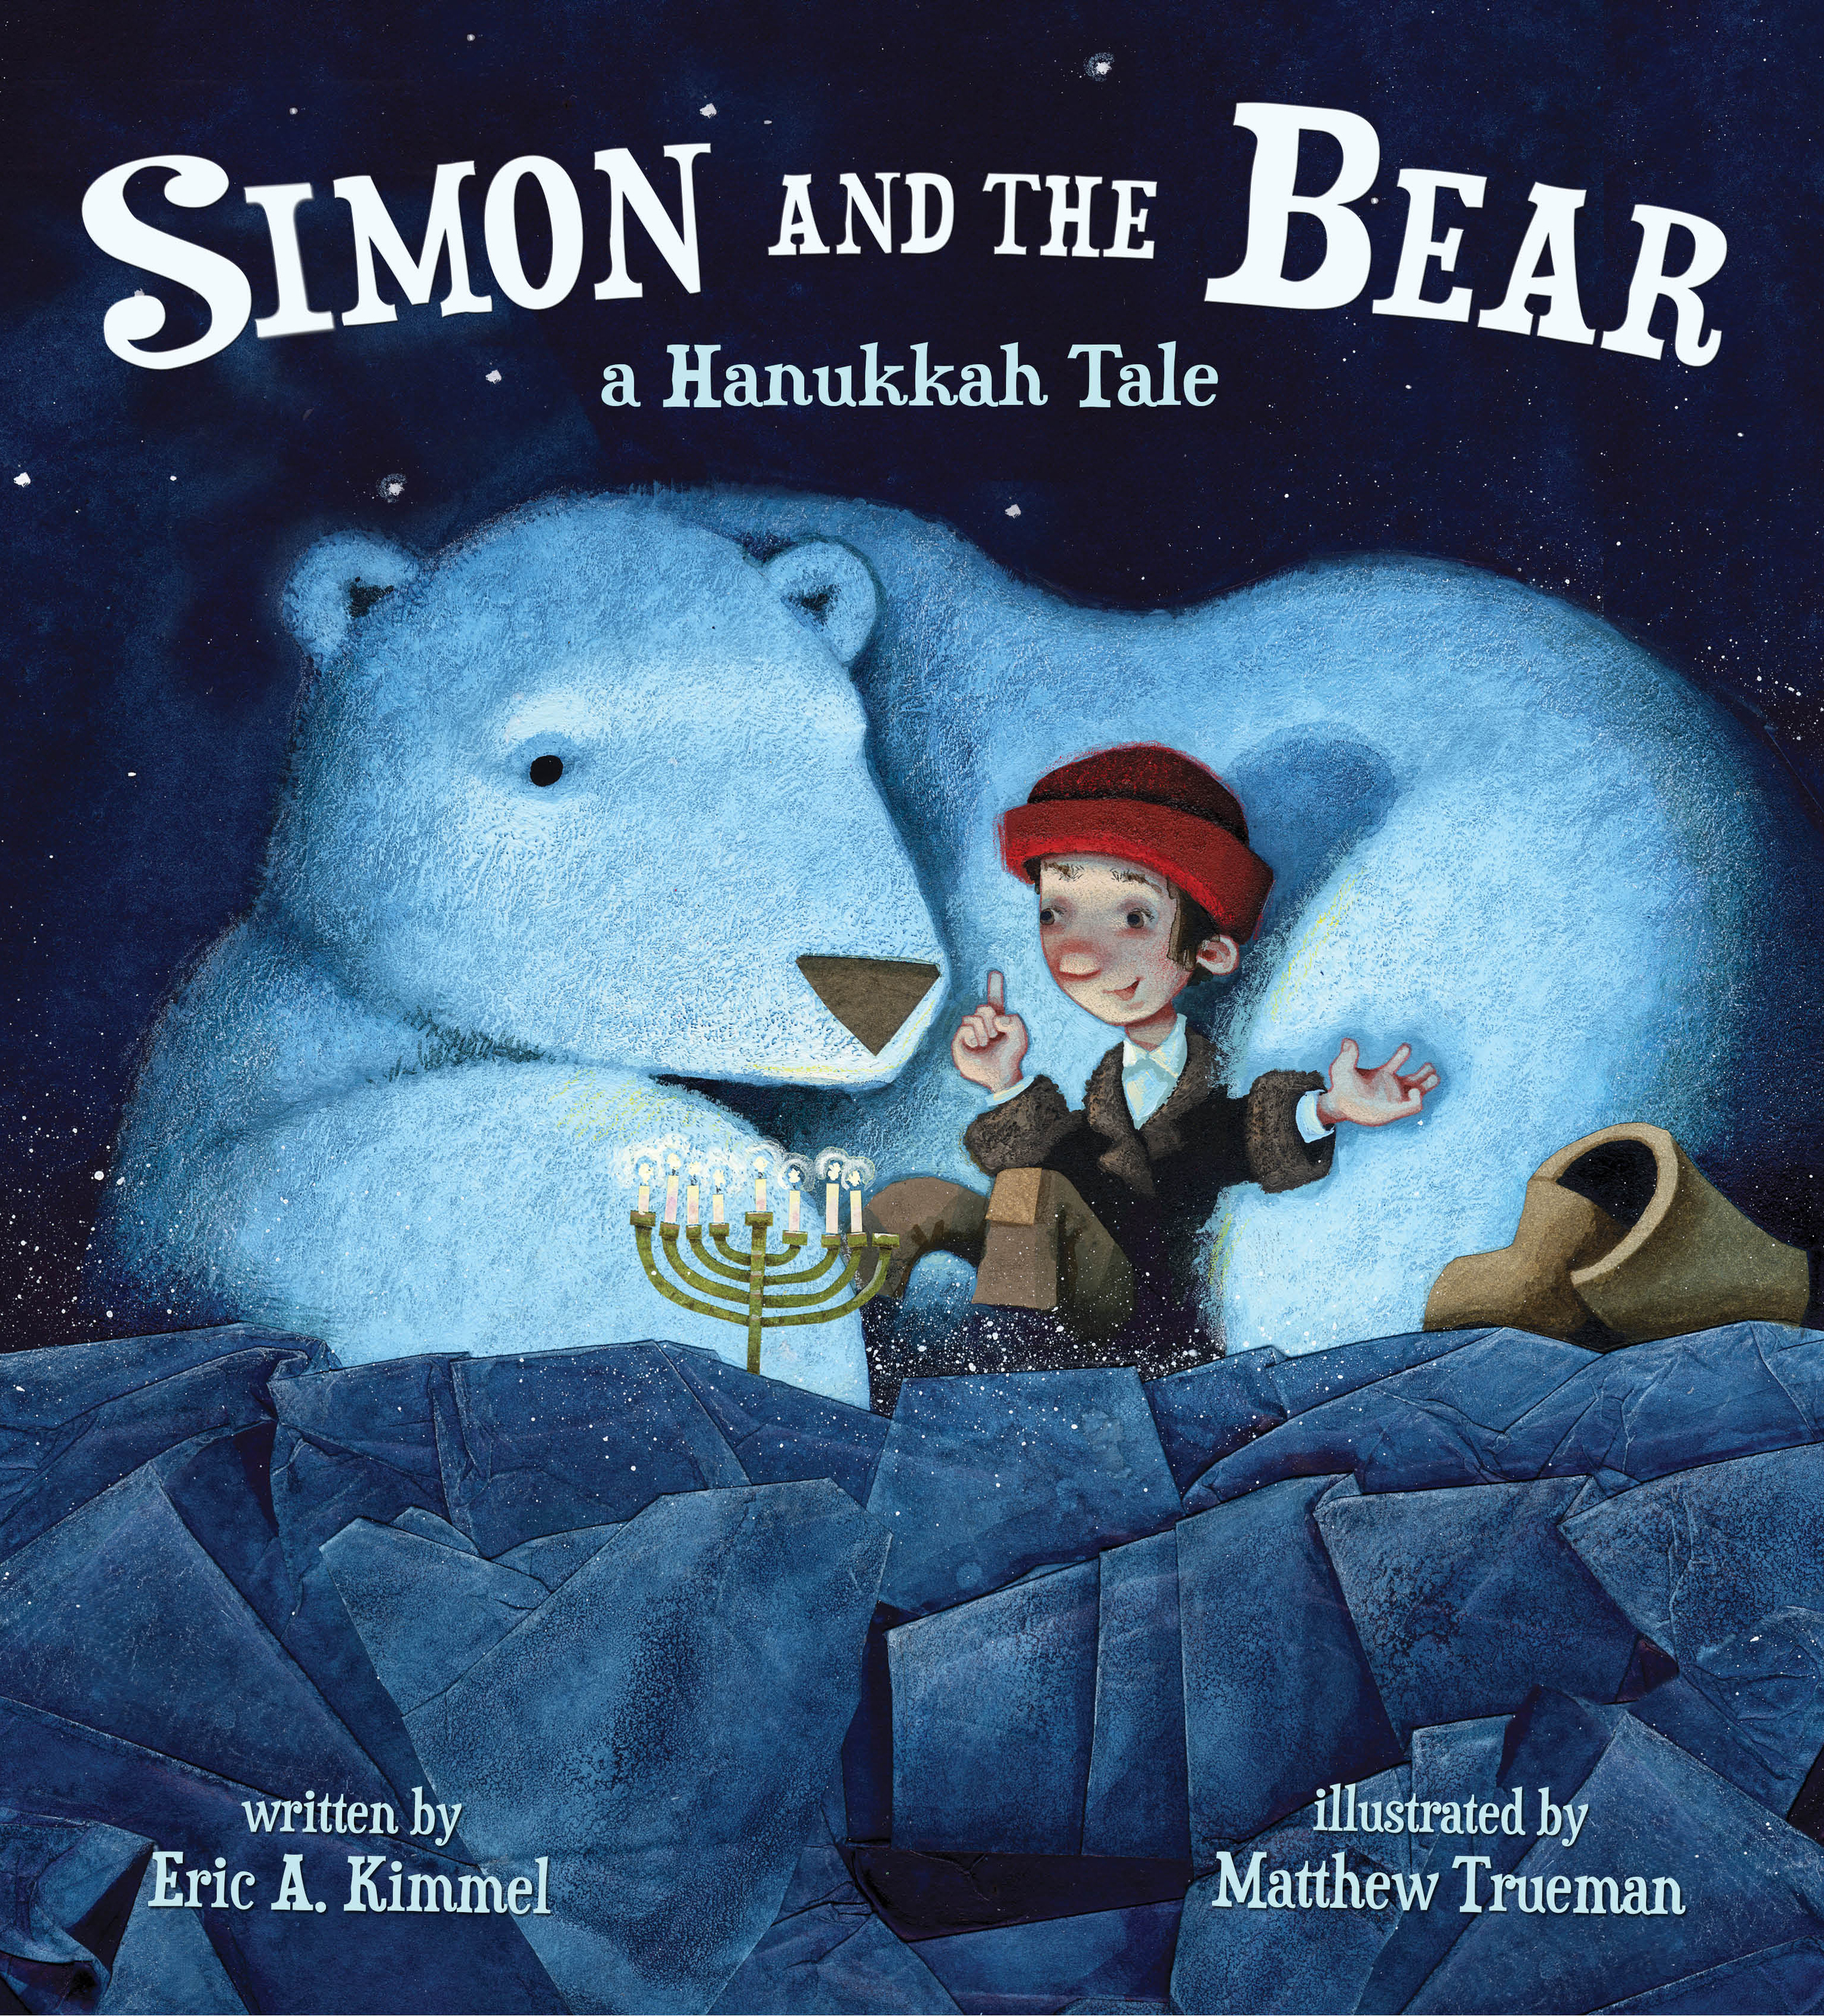 Simon and the Bear: A Hanukkah Tale by Eric A. Kimmel, illustrated by Matthew Trueman (2014)